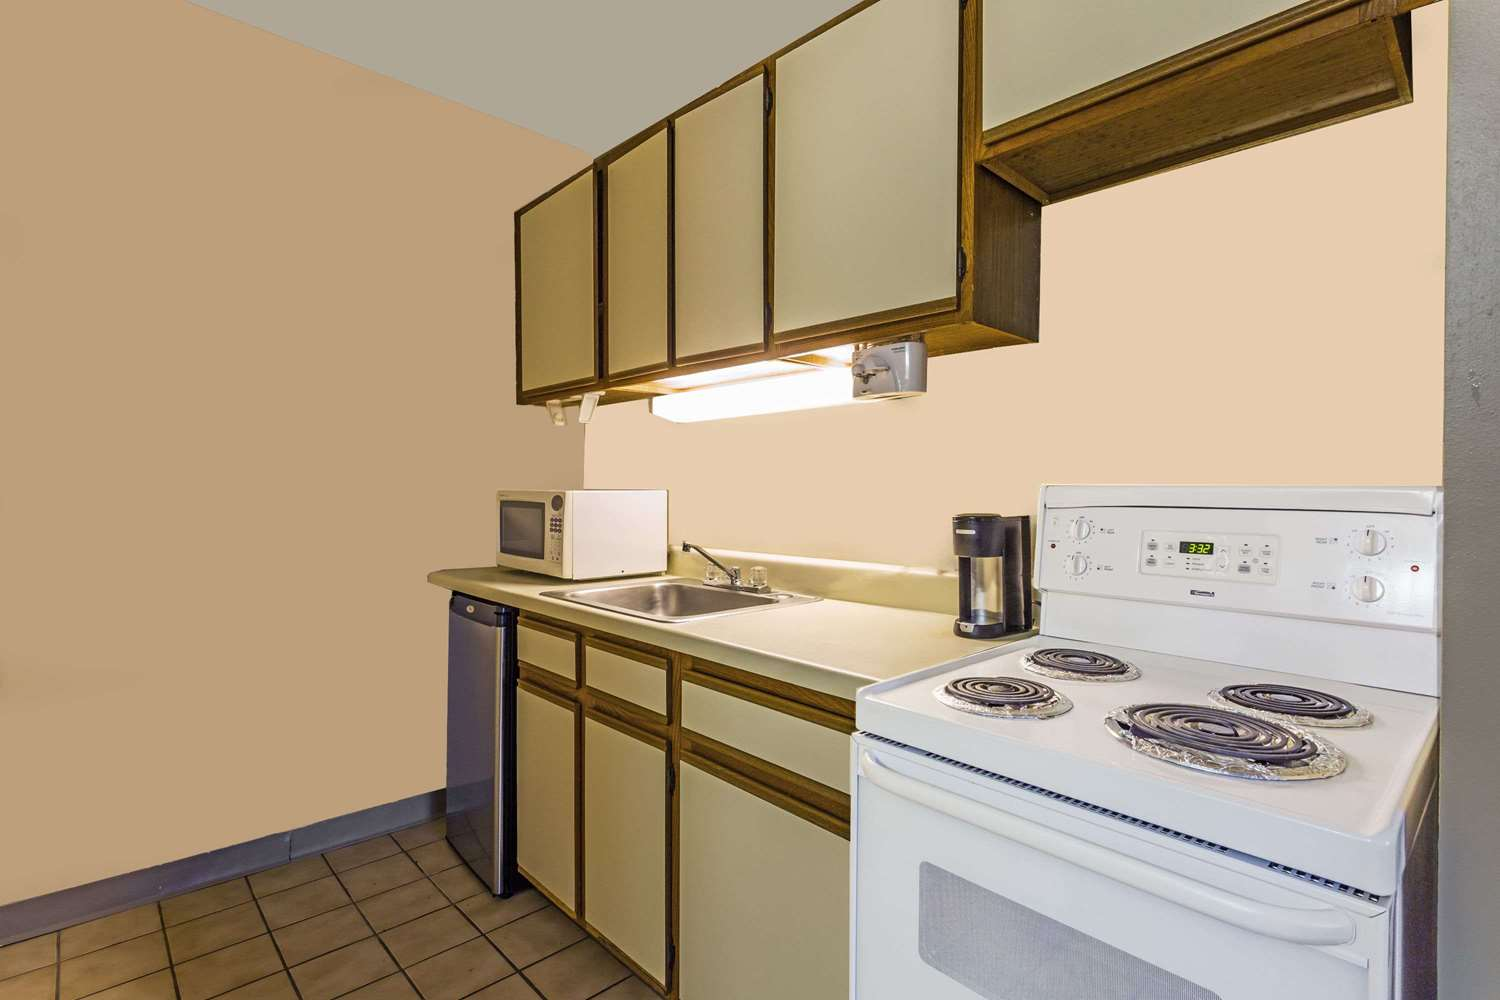 room days inn at the beach virginia beach - Cheap Hotels In Virginia Beach With Kitchenette